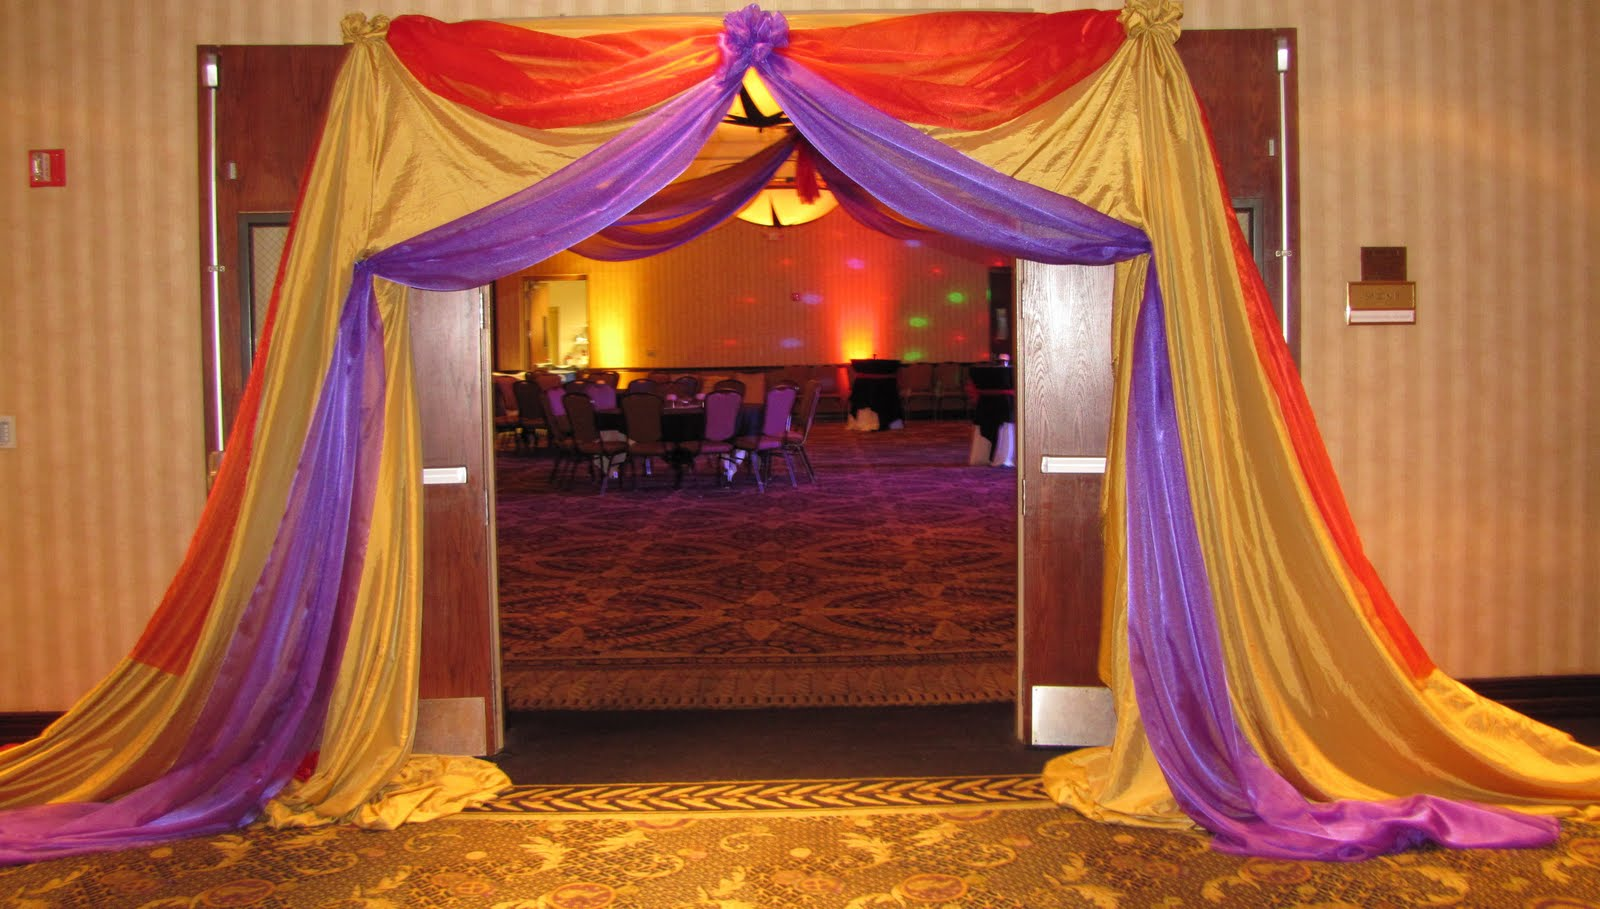 Party people event decorating company cypress creek for Arabian nights decoration ideas